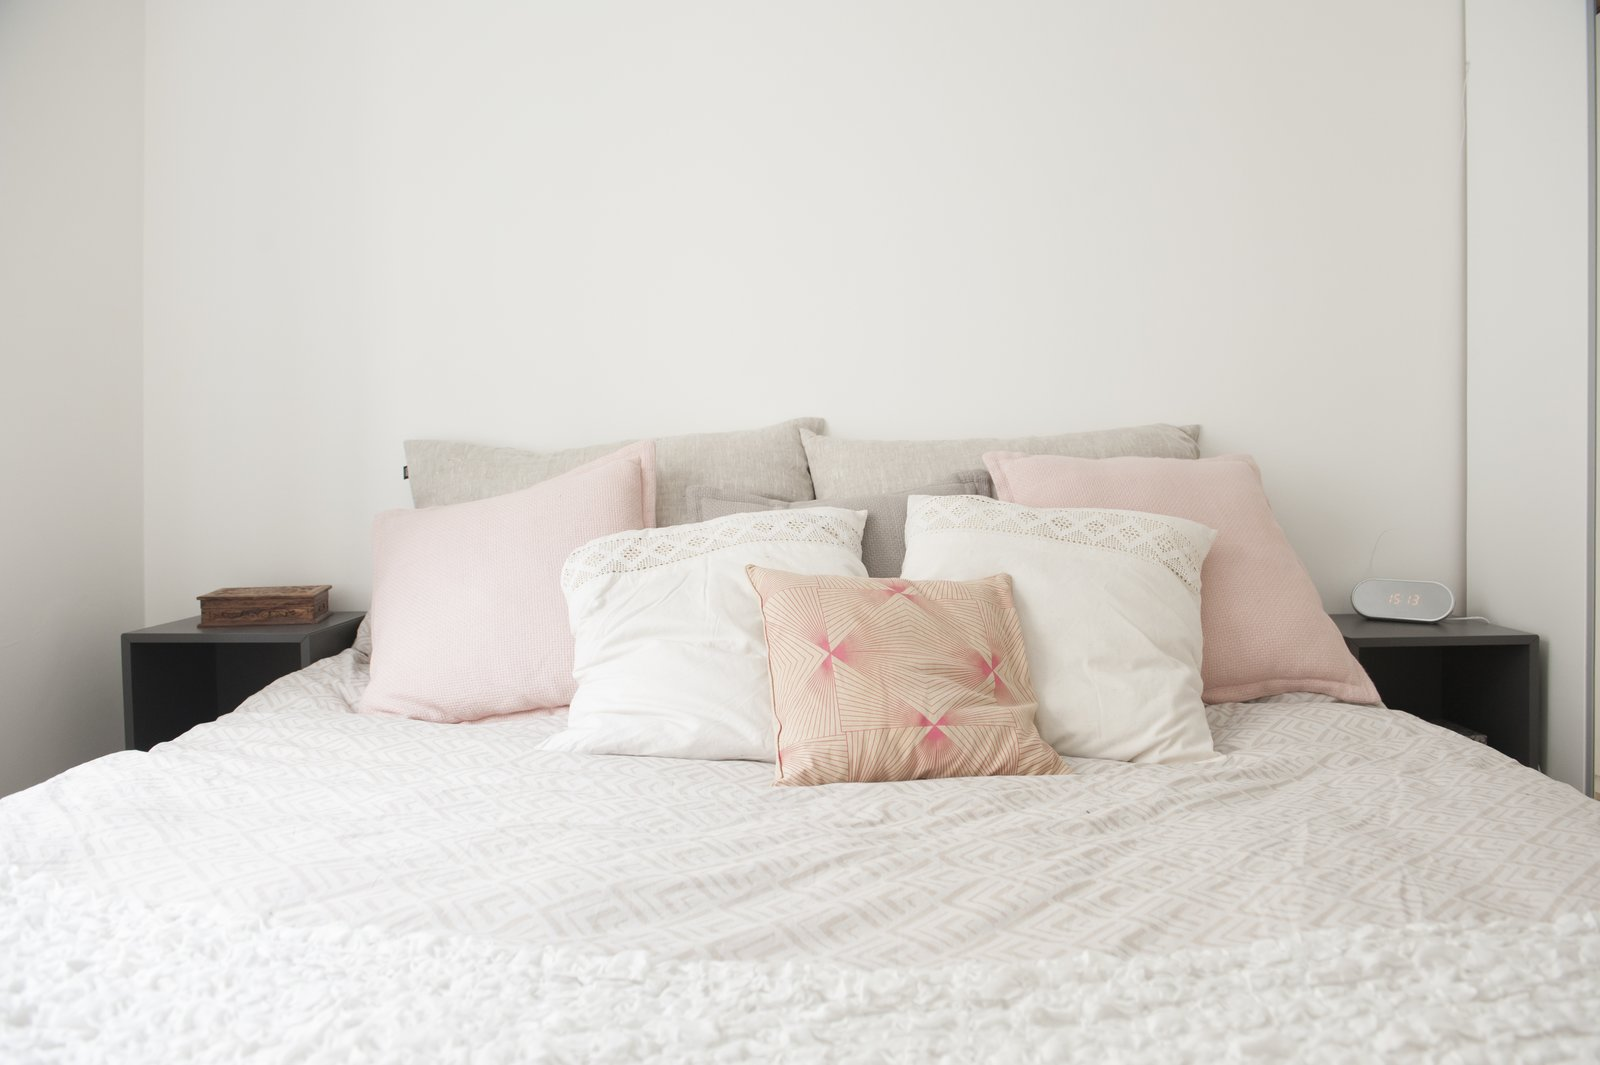 Bedroom and Bed pink and white pillows atop an earth-toned bed  Pretty and Sweet Family Flat by Petra Ford